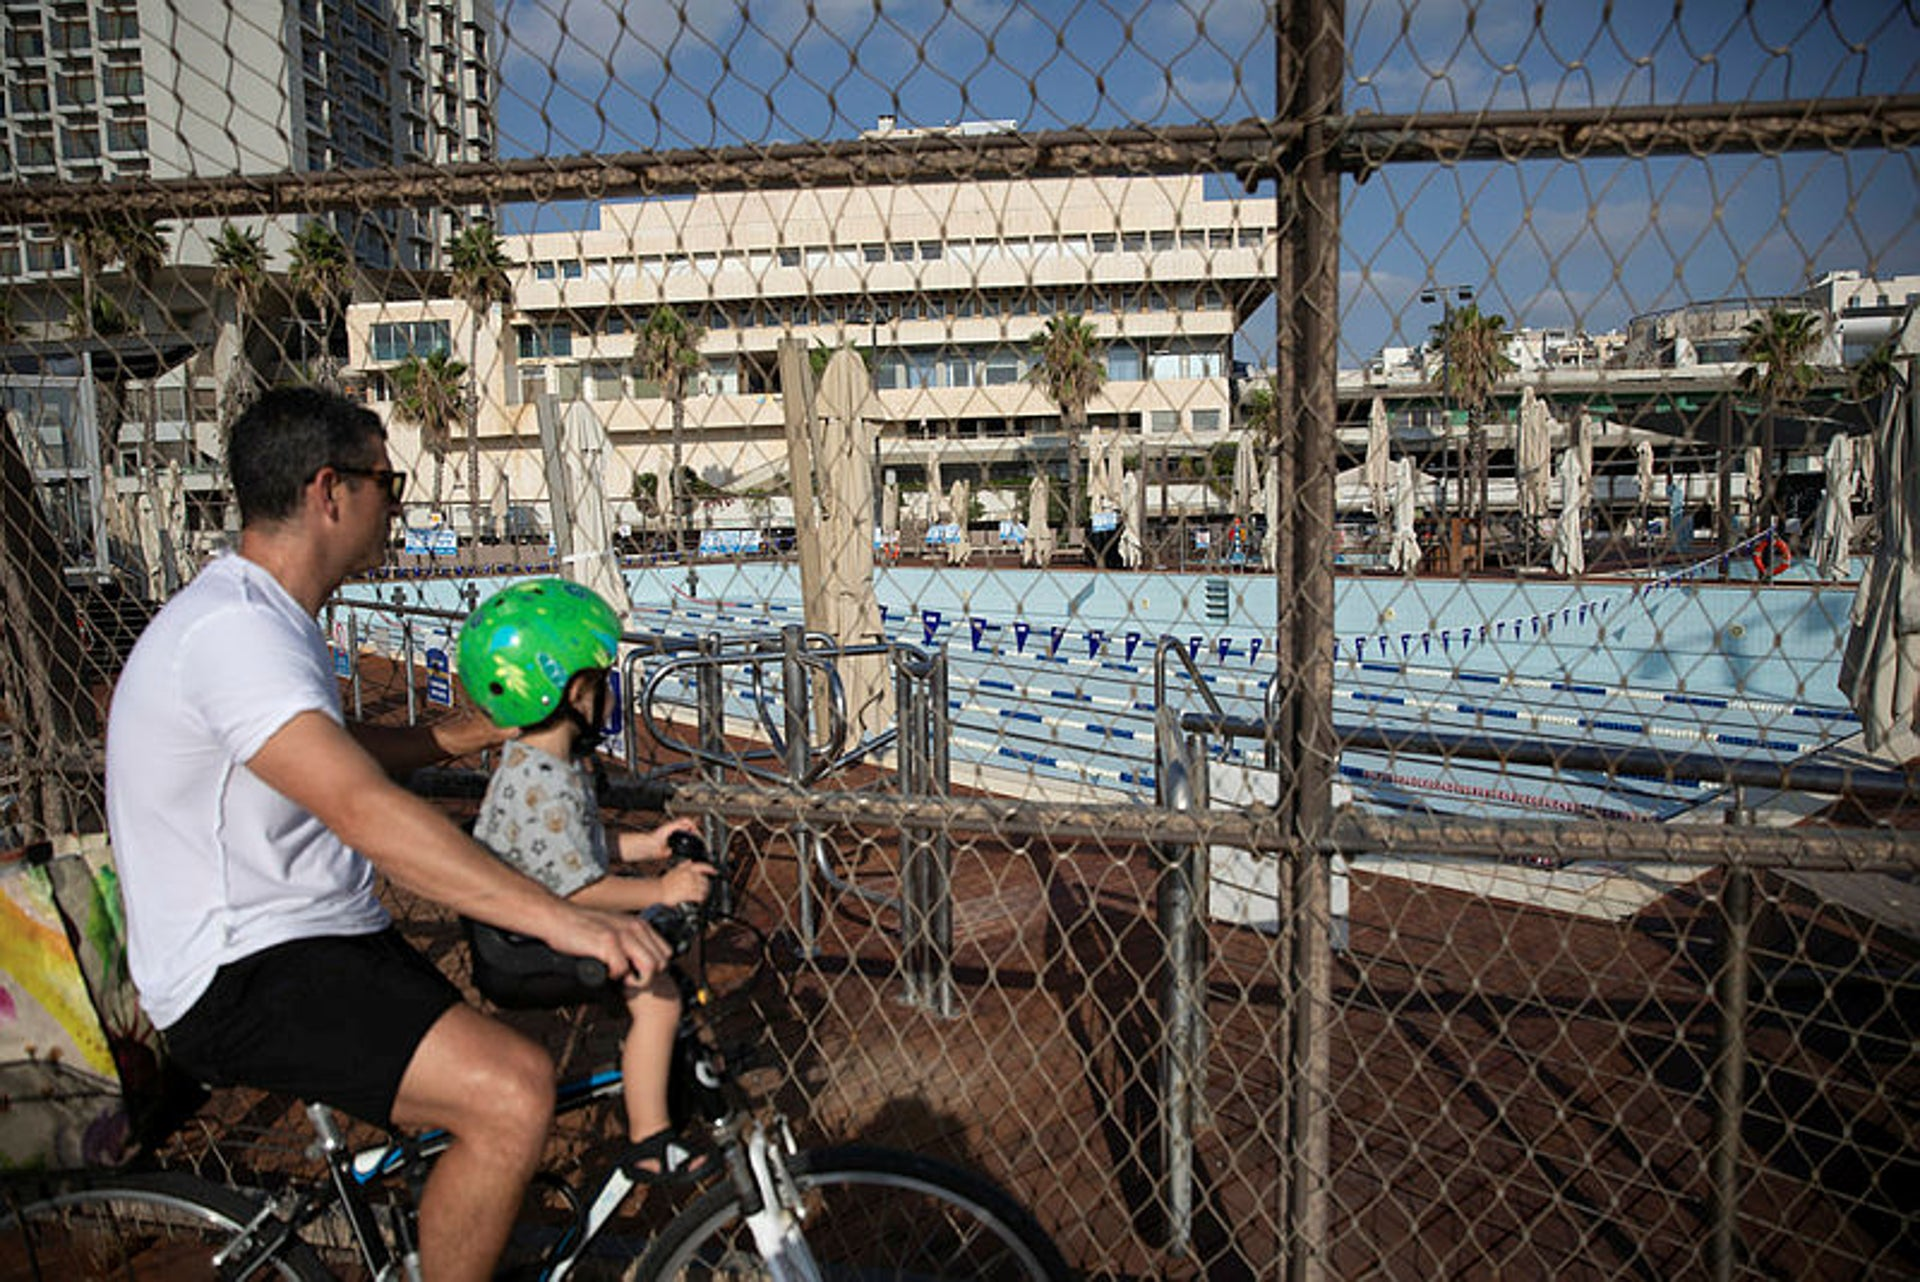 A man and his kid look into a closed pool, Tel Aviv, July 13, 2020.